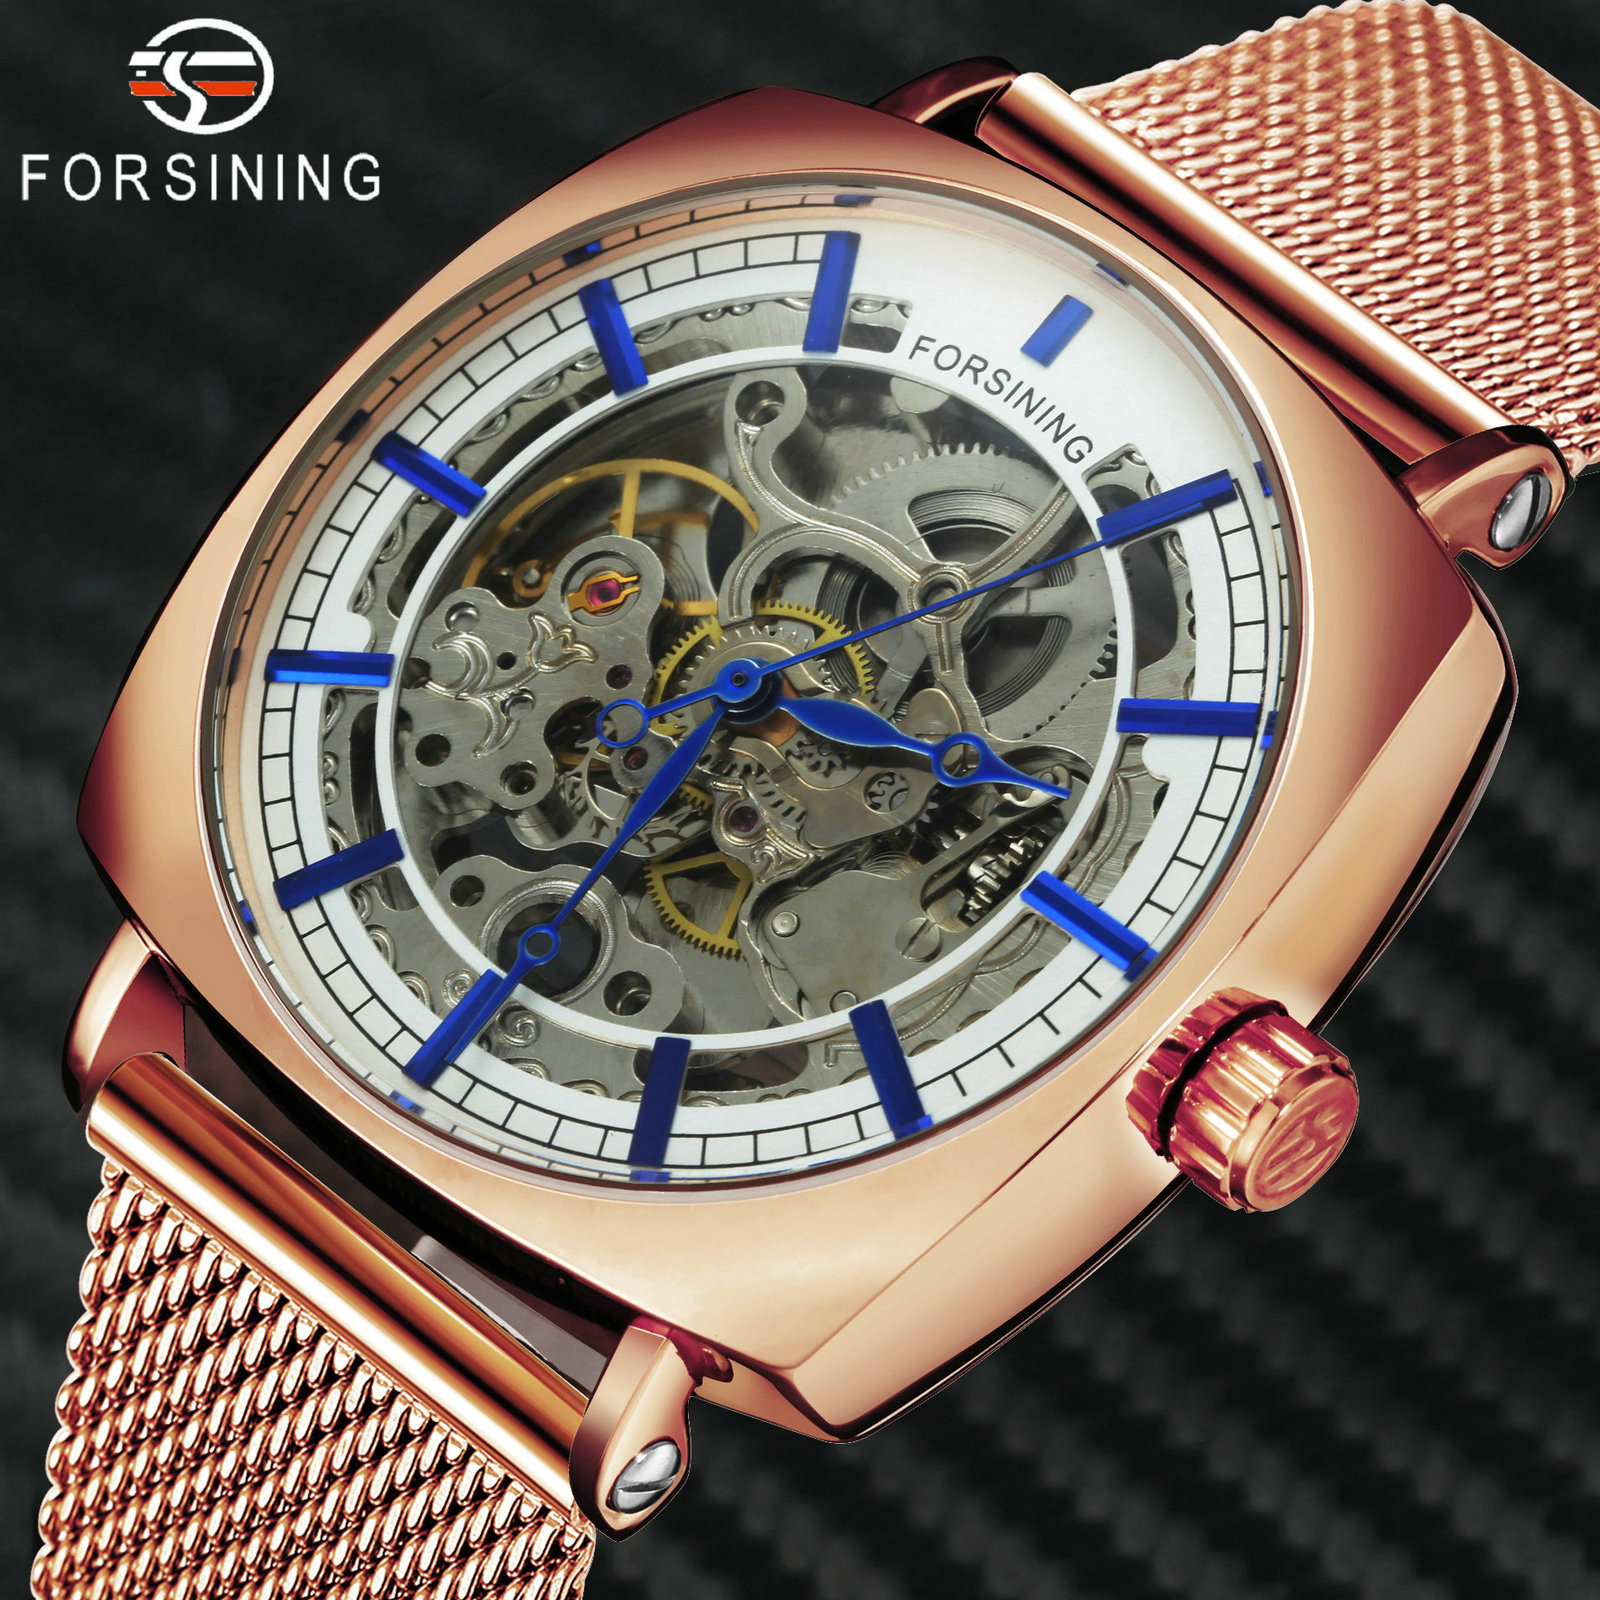 FORSINING Top Brand Luxury Automatic Watch Men Skeleton Mechanical Watches Fashion Rose-Gold Square Wristwatches Men's Gift Xmas